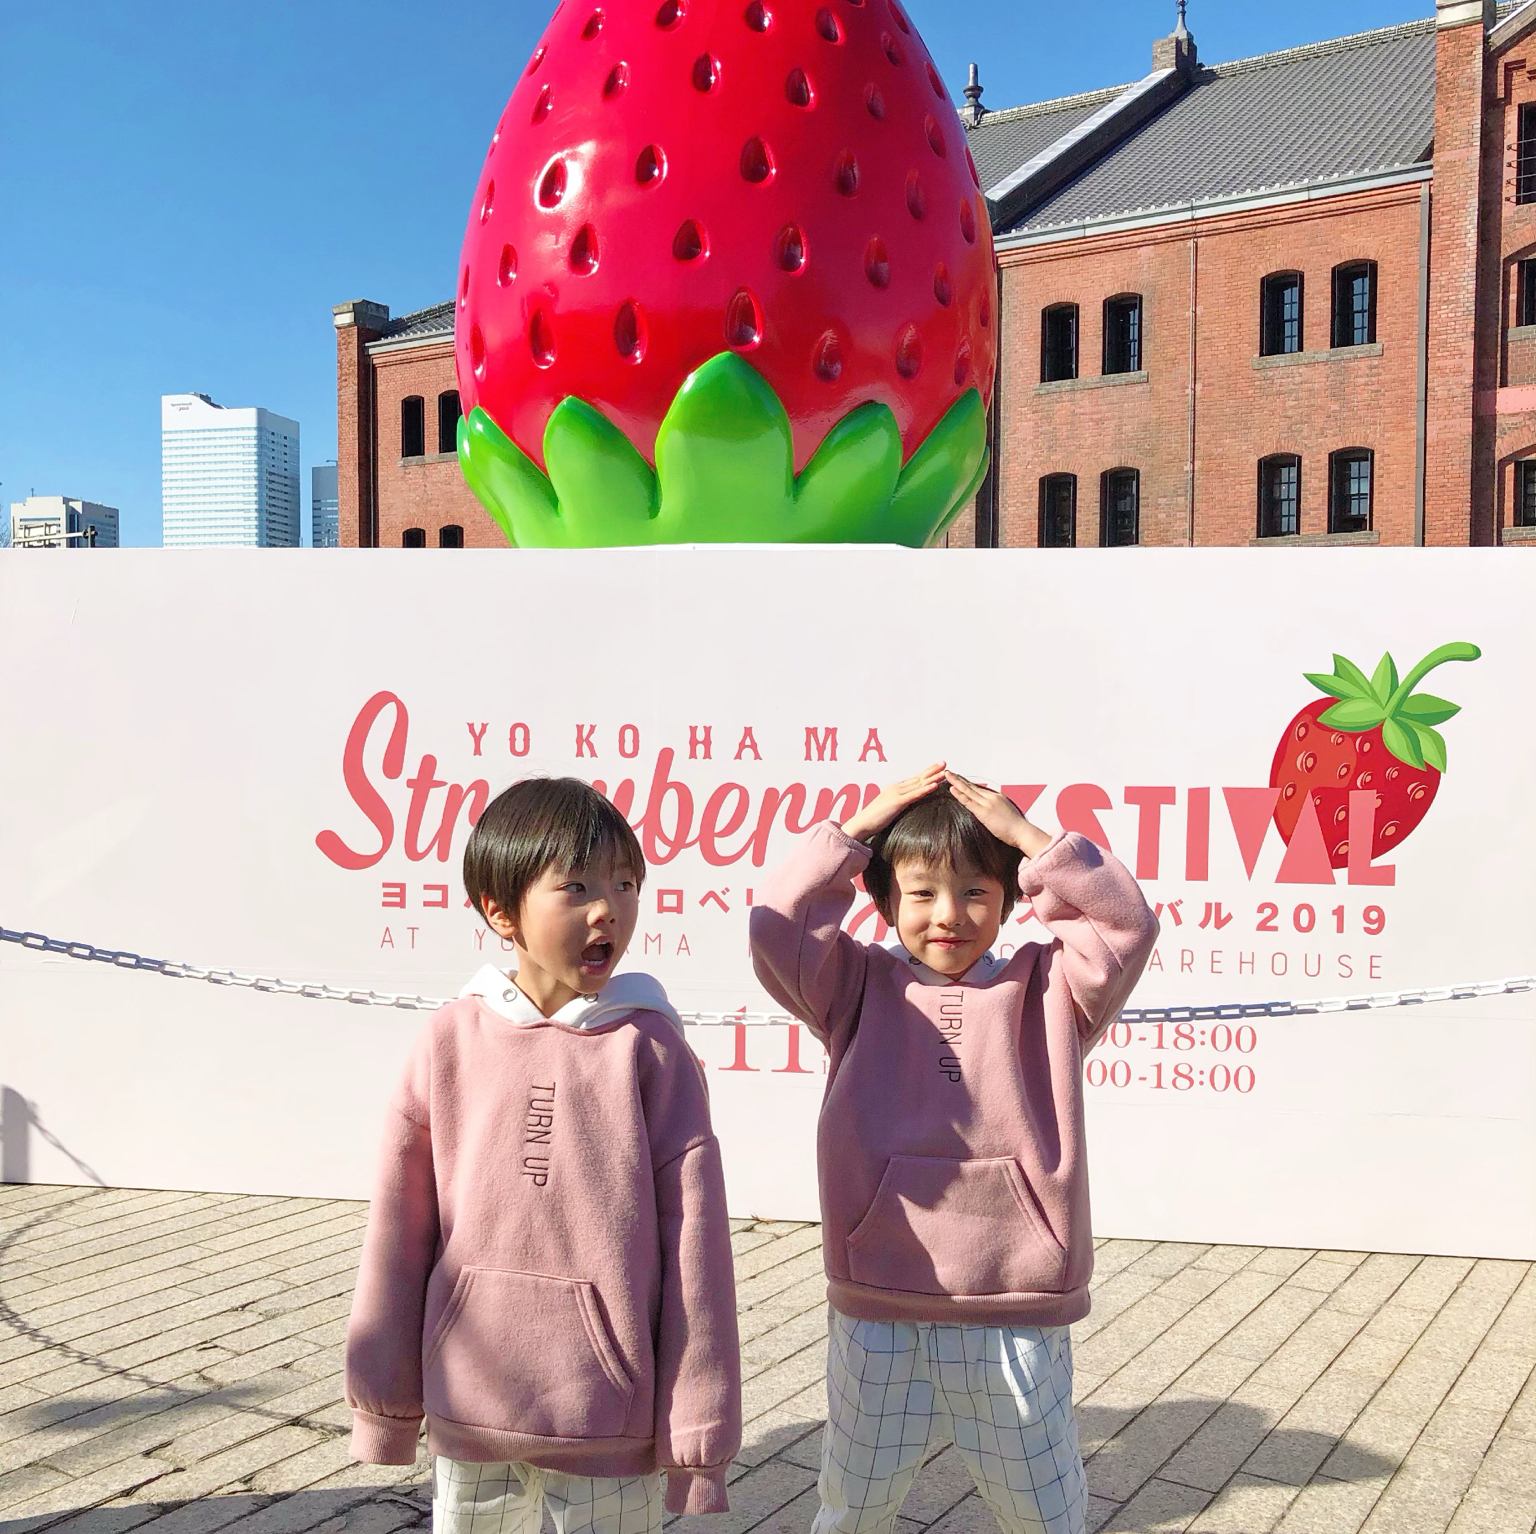 Yokohama strawberry festival